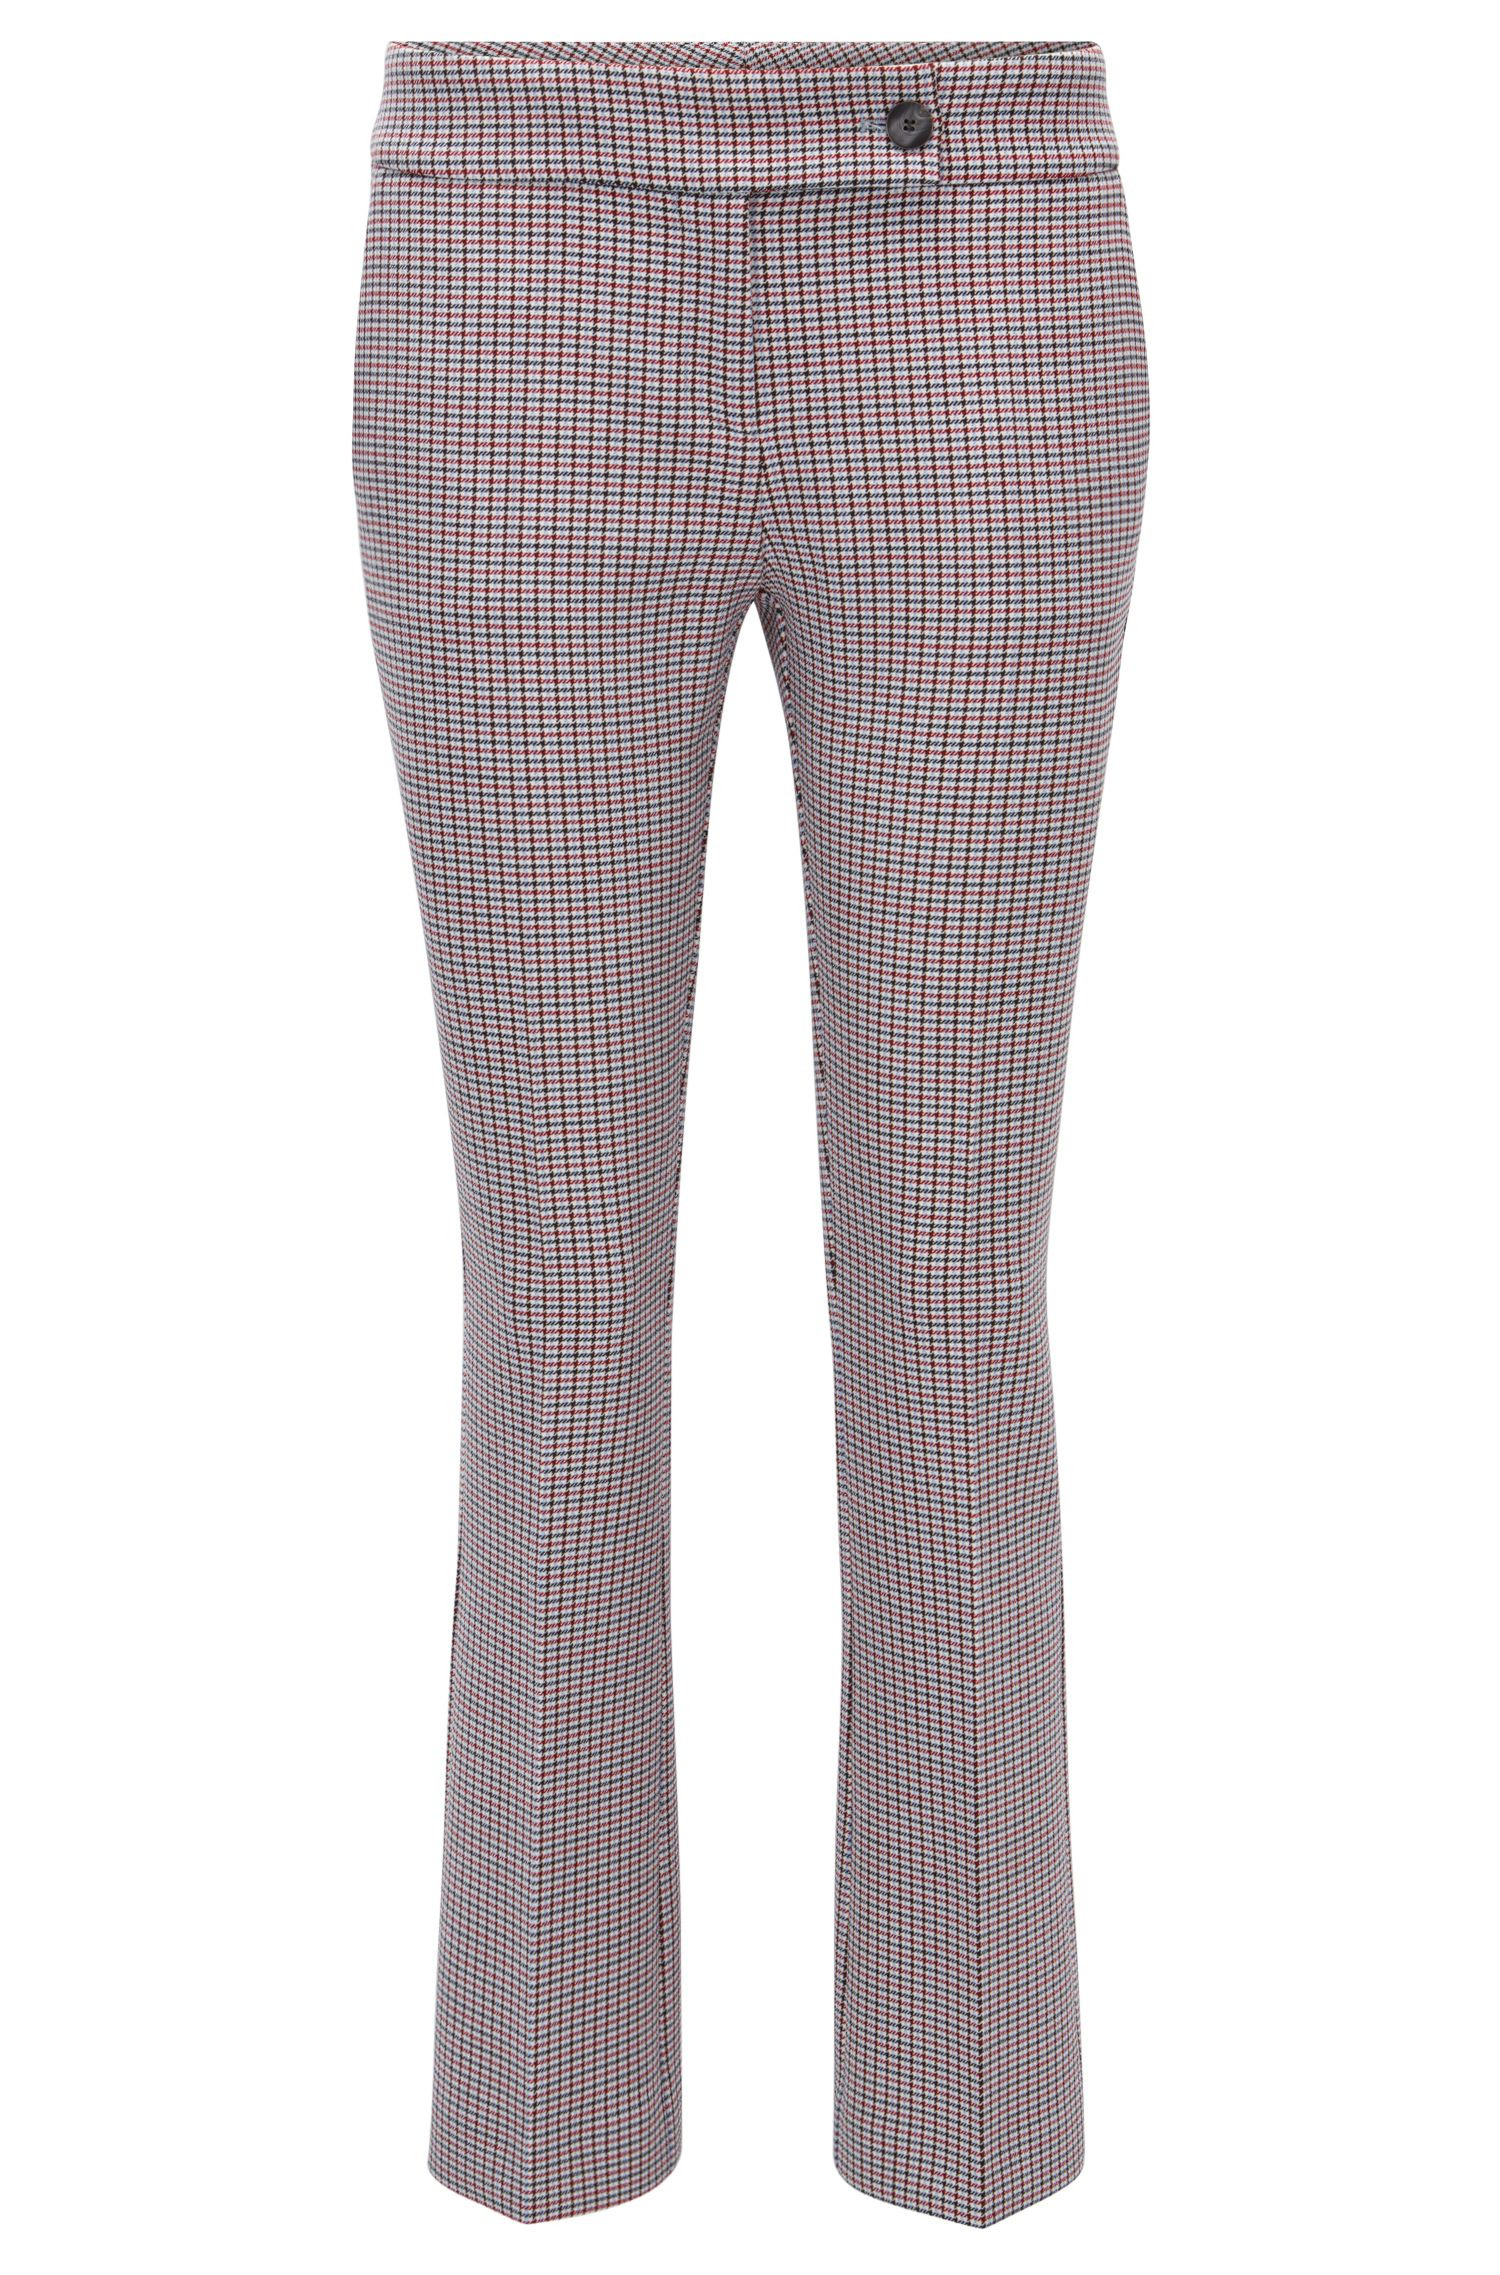 Regular-fit trousers in double-faced fabric